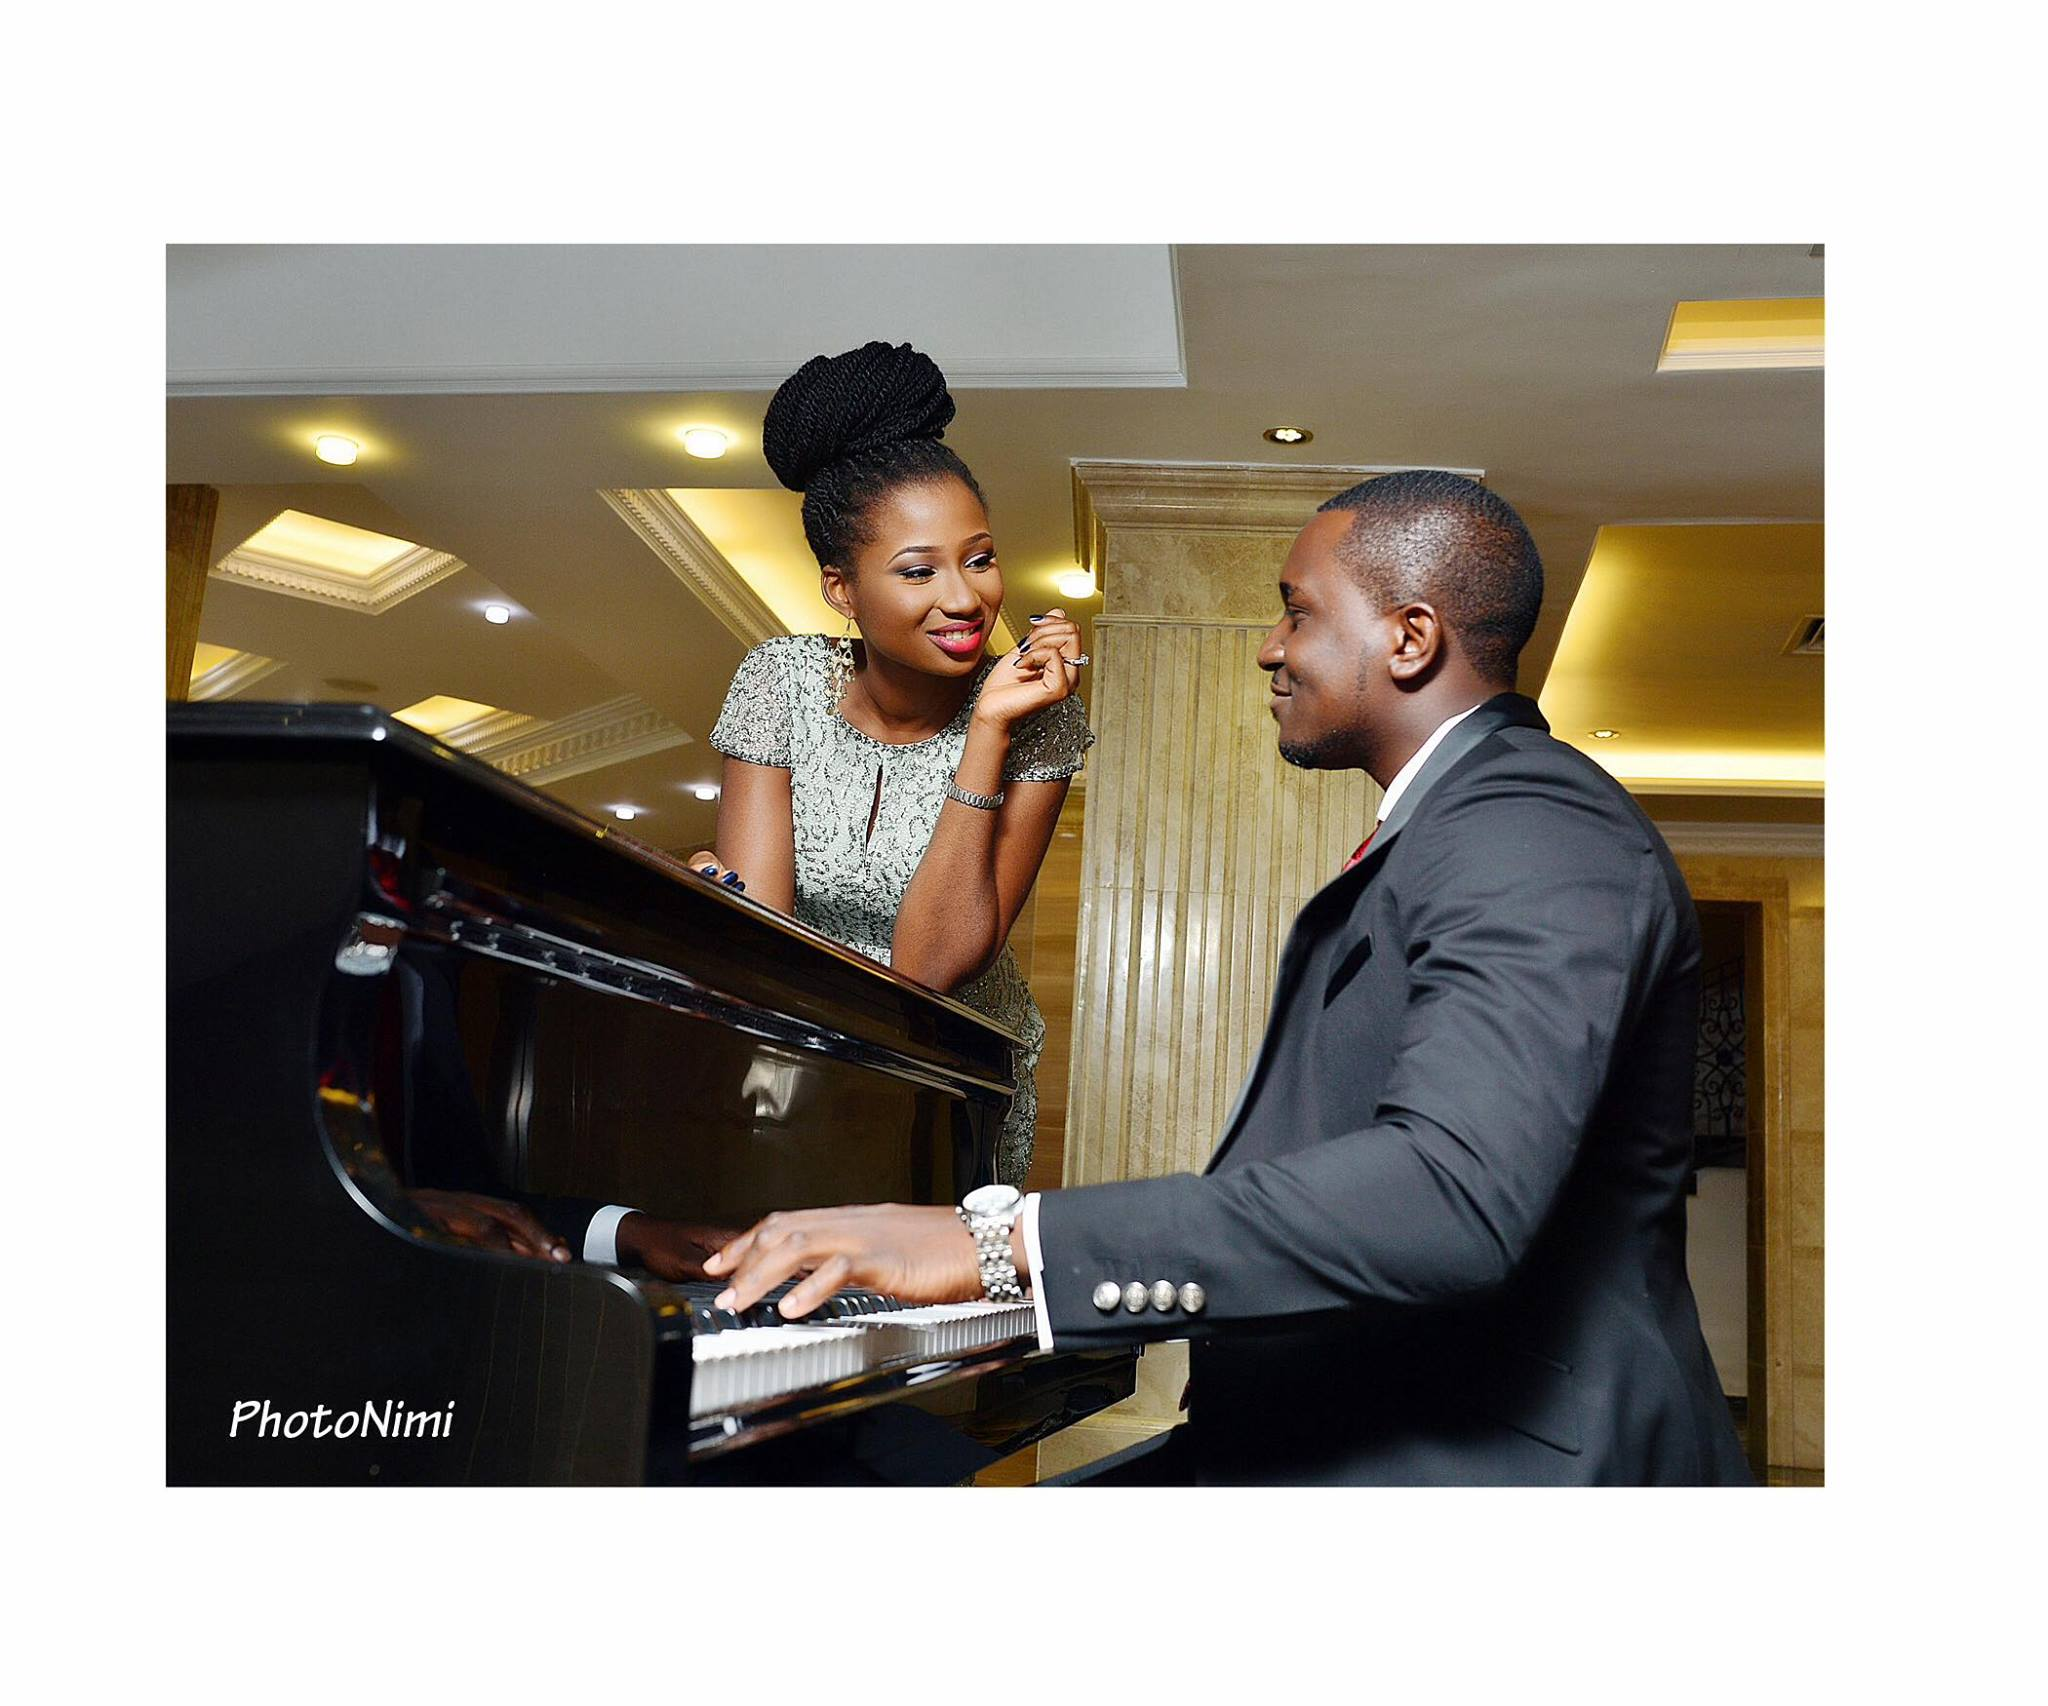 Jemi and Wale at the piano, photonimi, wedding